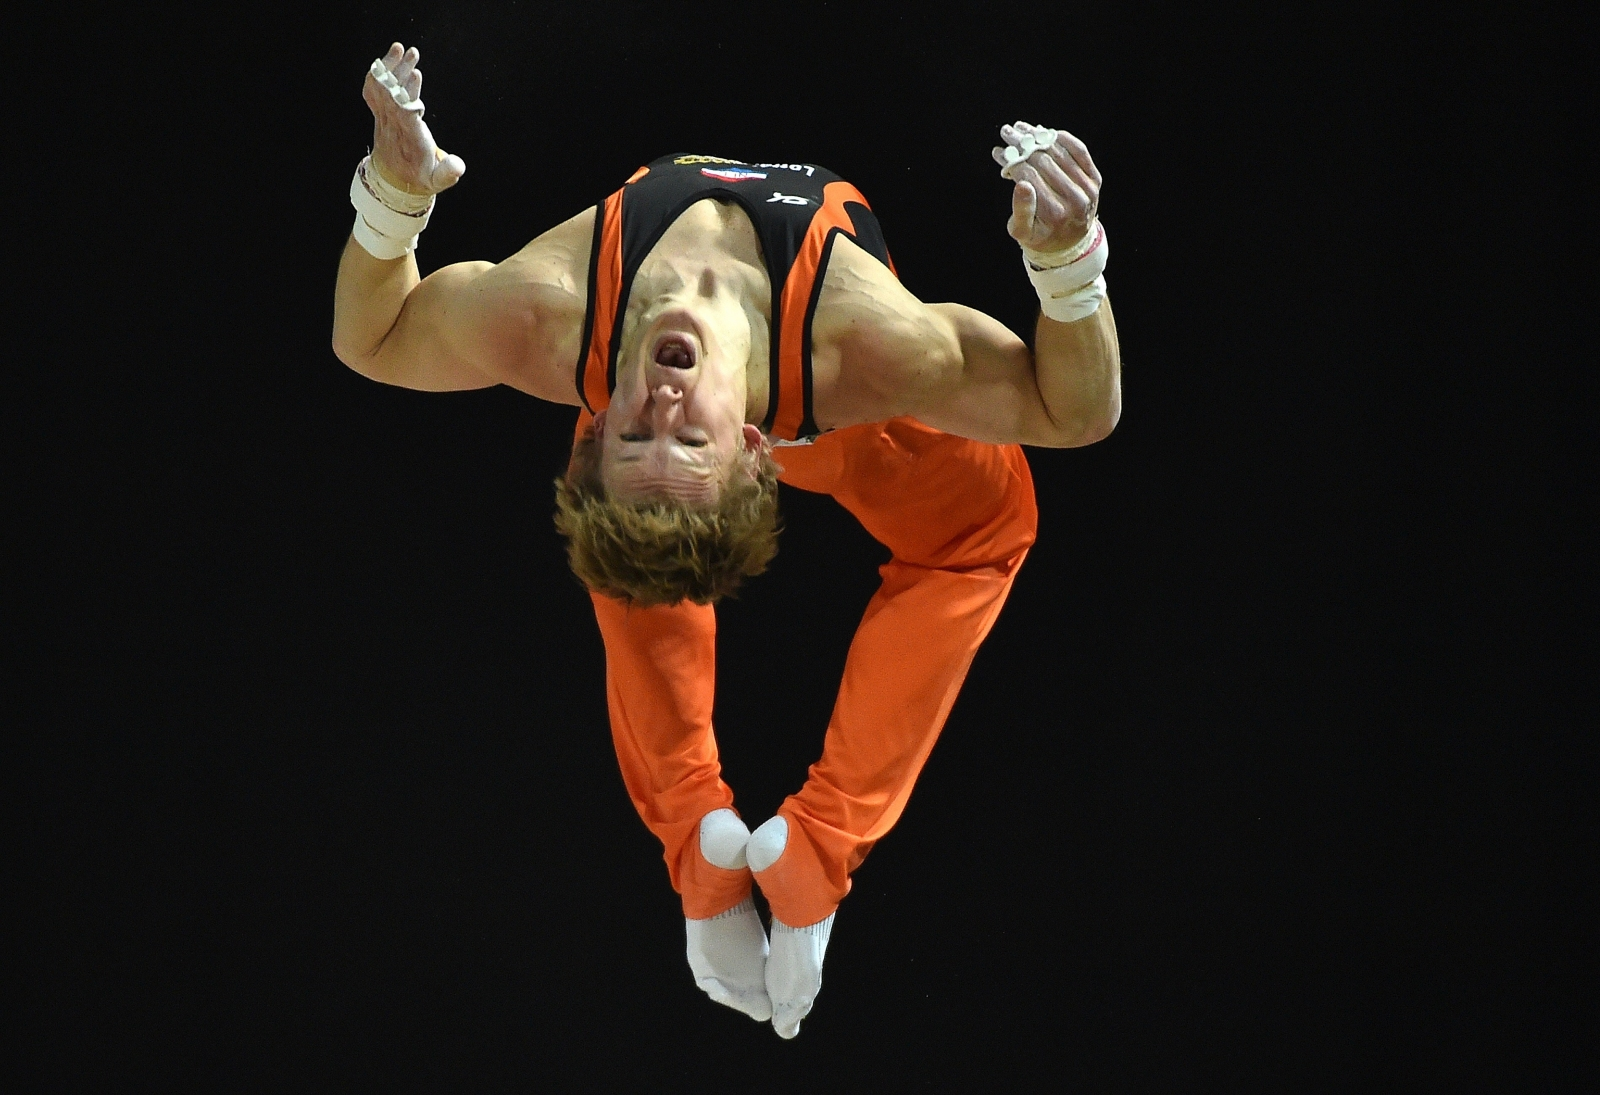 Dutchman Epke Zonderland Will Be Aiming To Recapture His High Bar Gold From London Getty